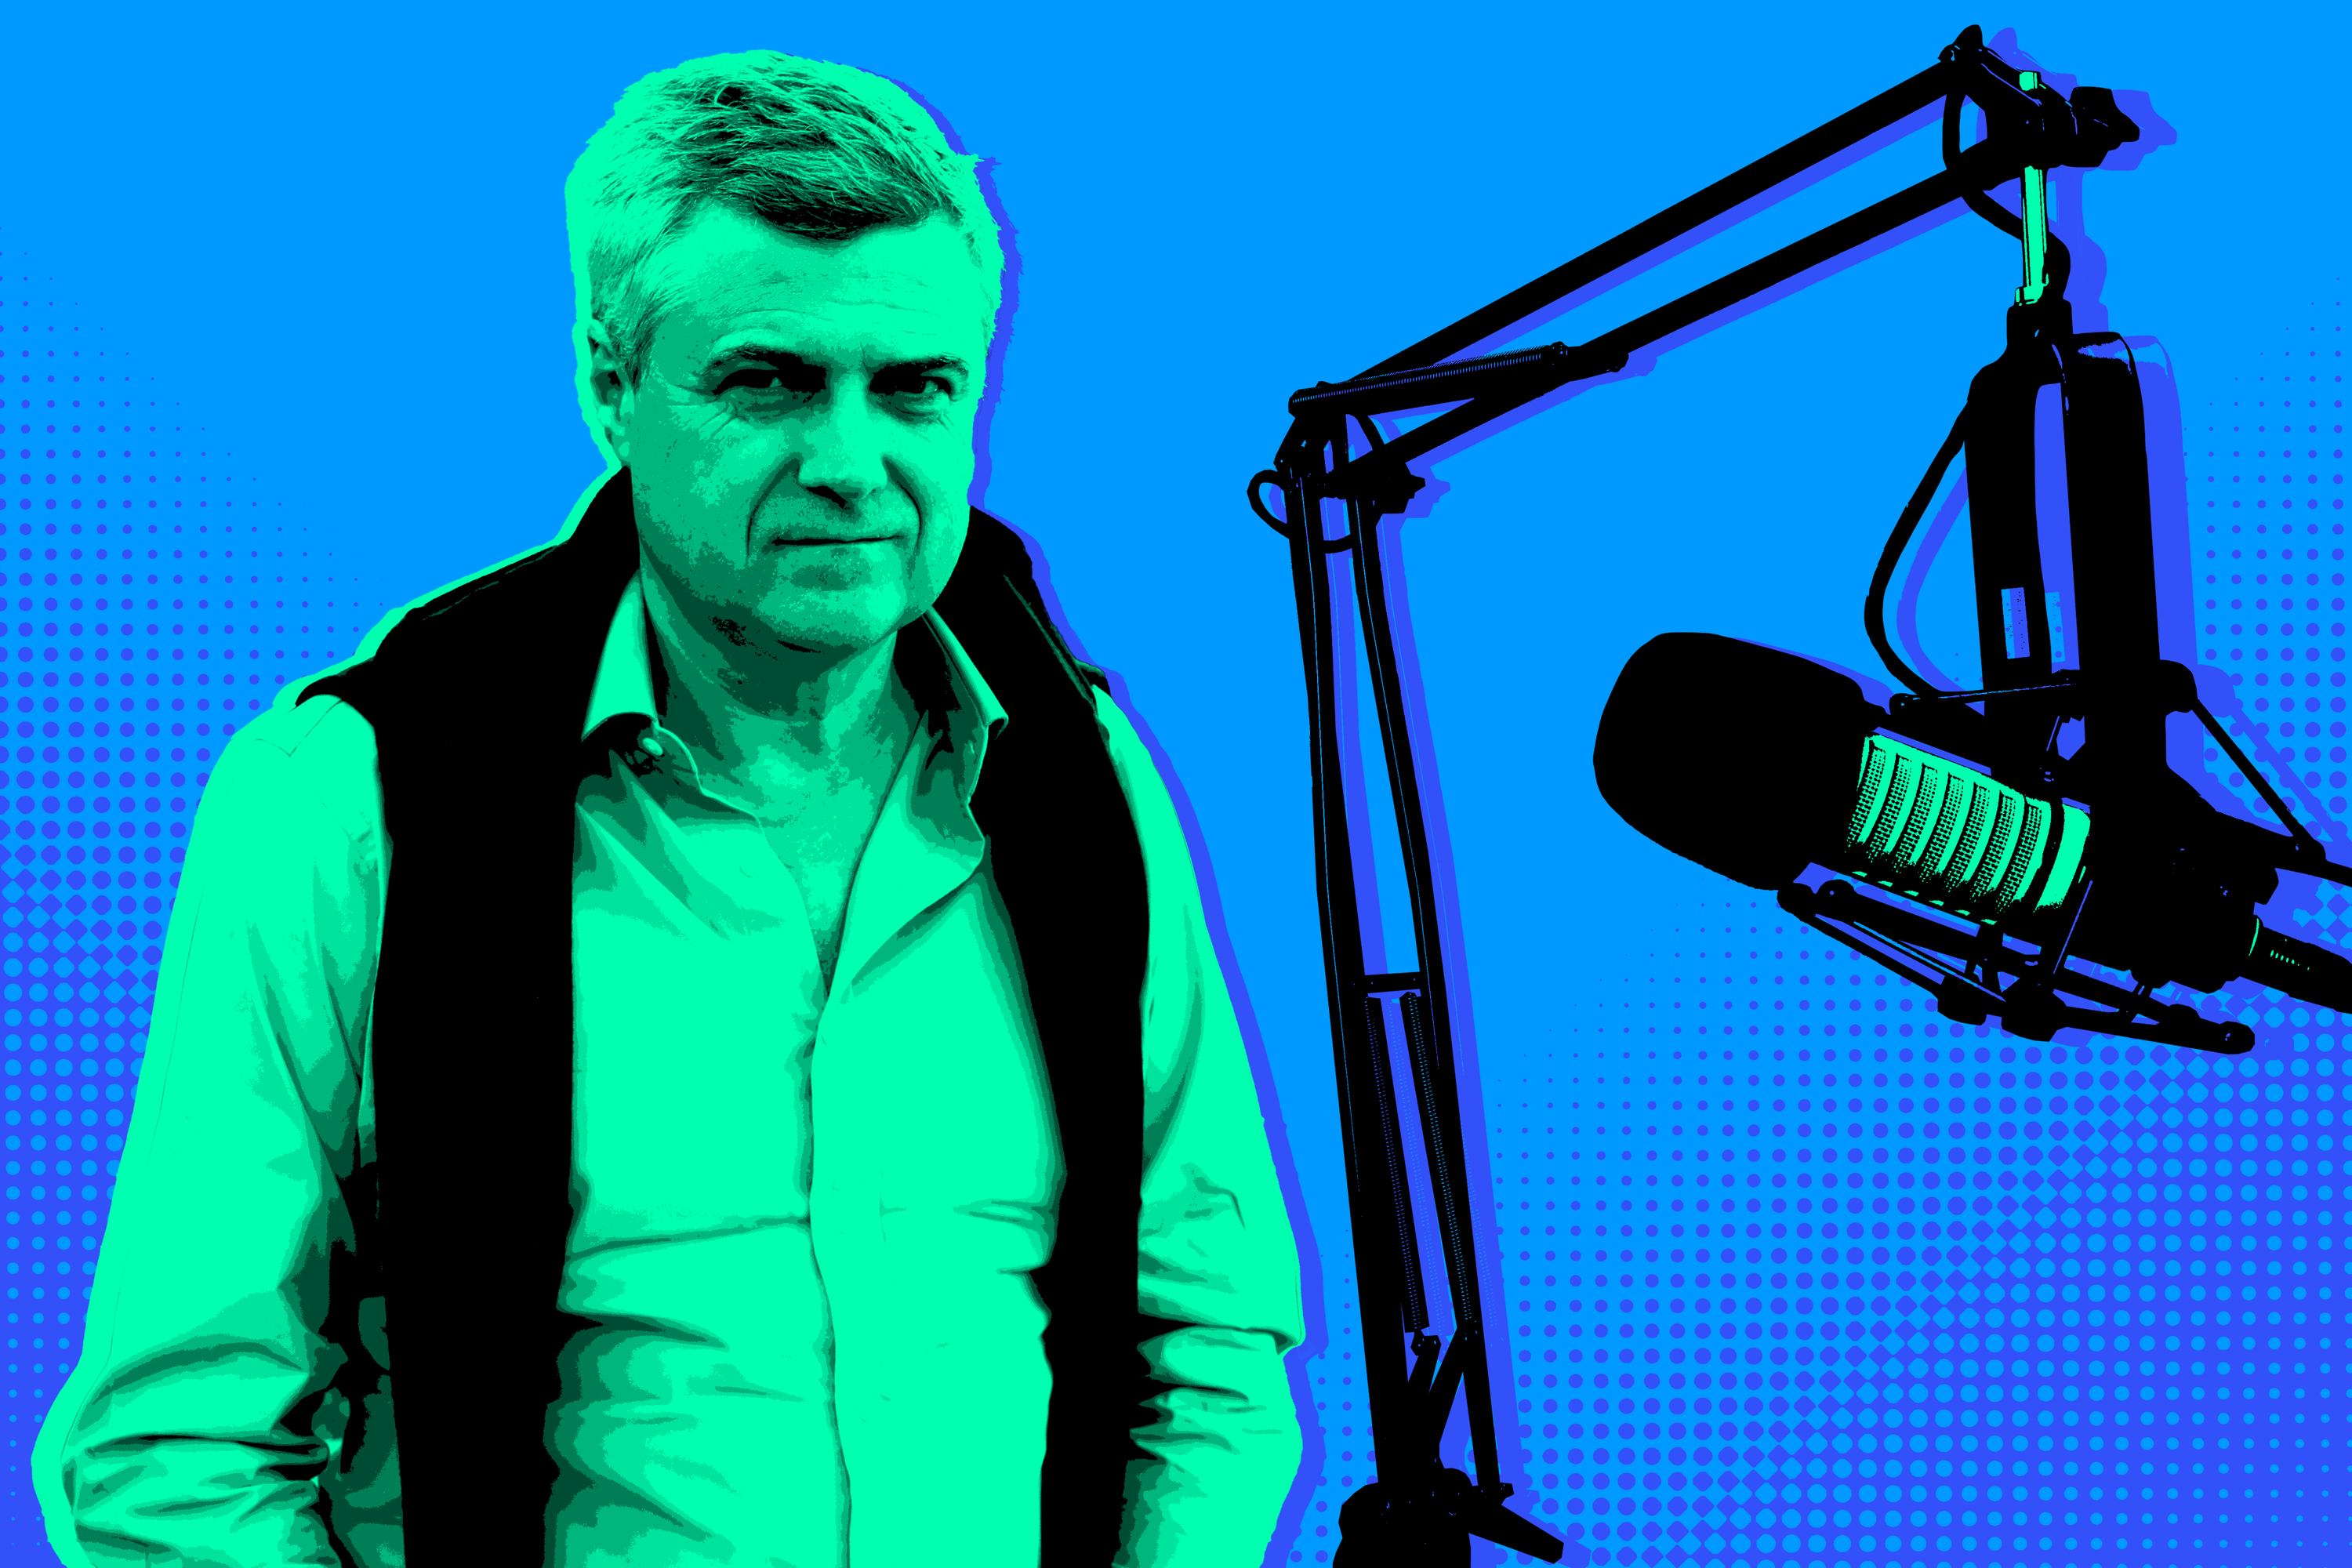 WPP CEO Mark Read on building a leaner holding company: 'We don't need 500 brands'